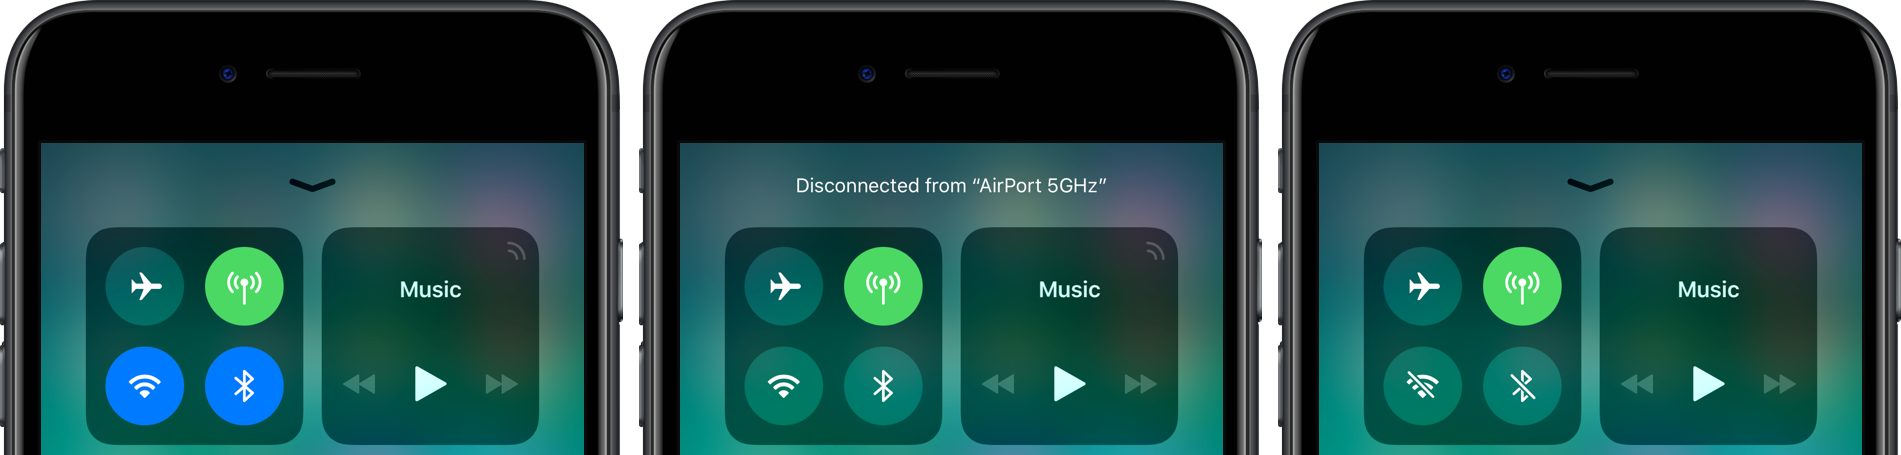 Ios 11 2 Makes It Clearer How Control Center S Wi Fi And Bluetooth Toggles Work